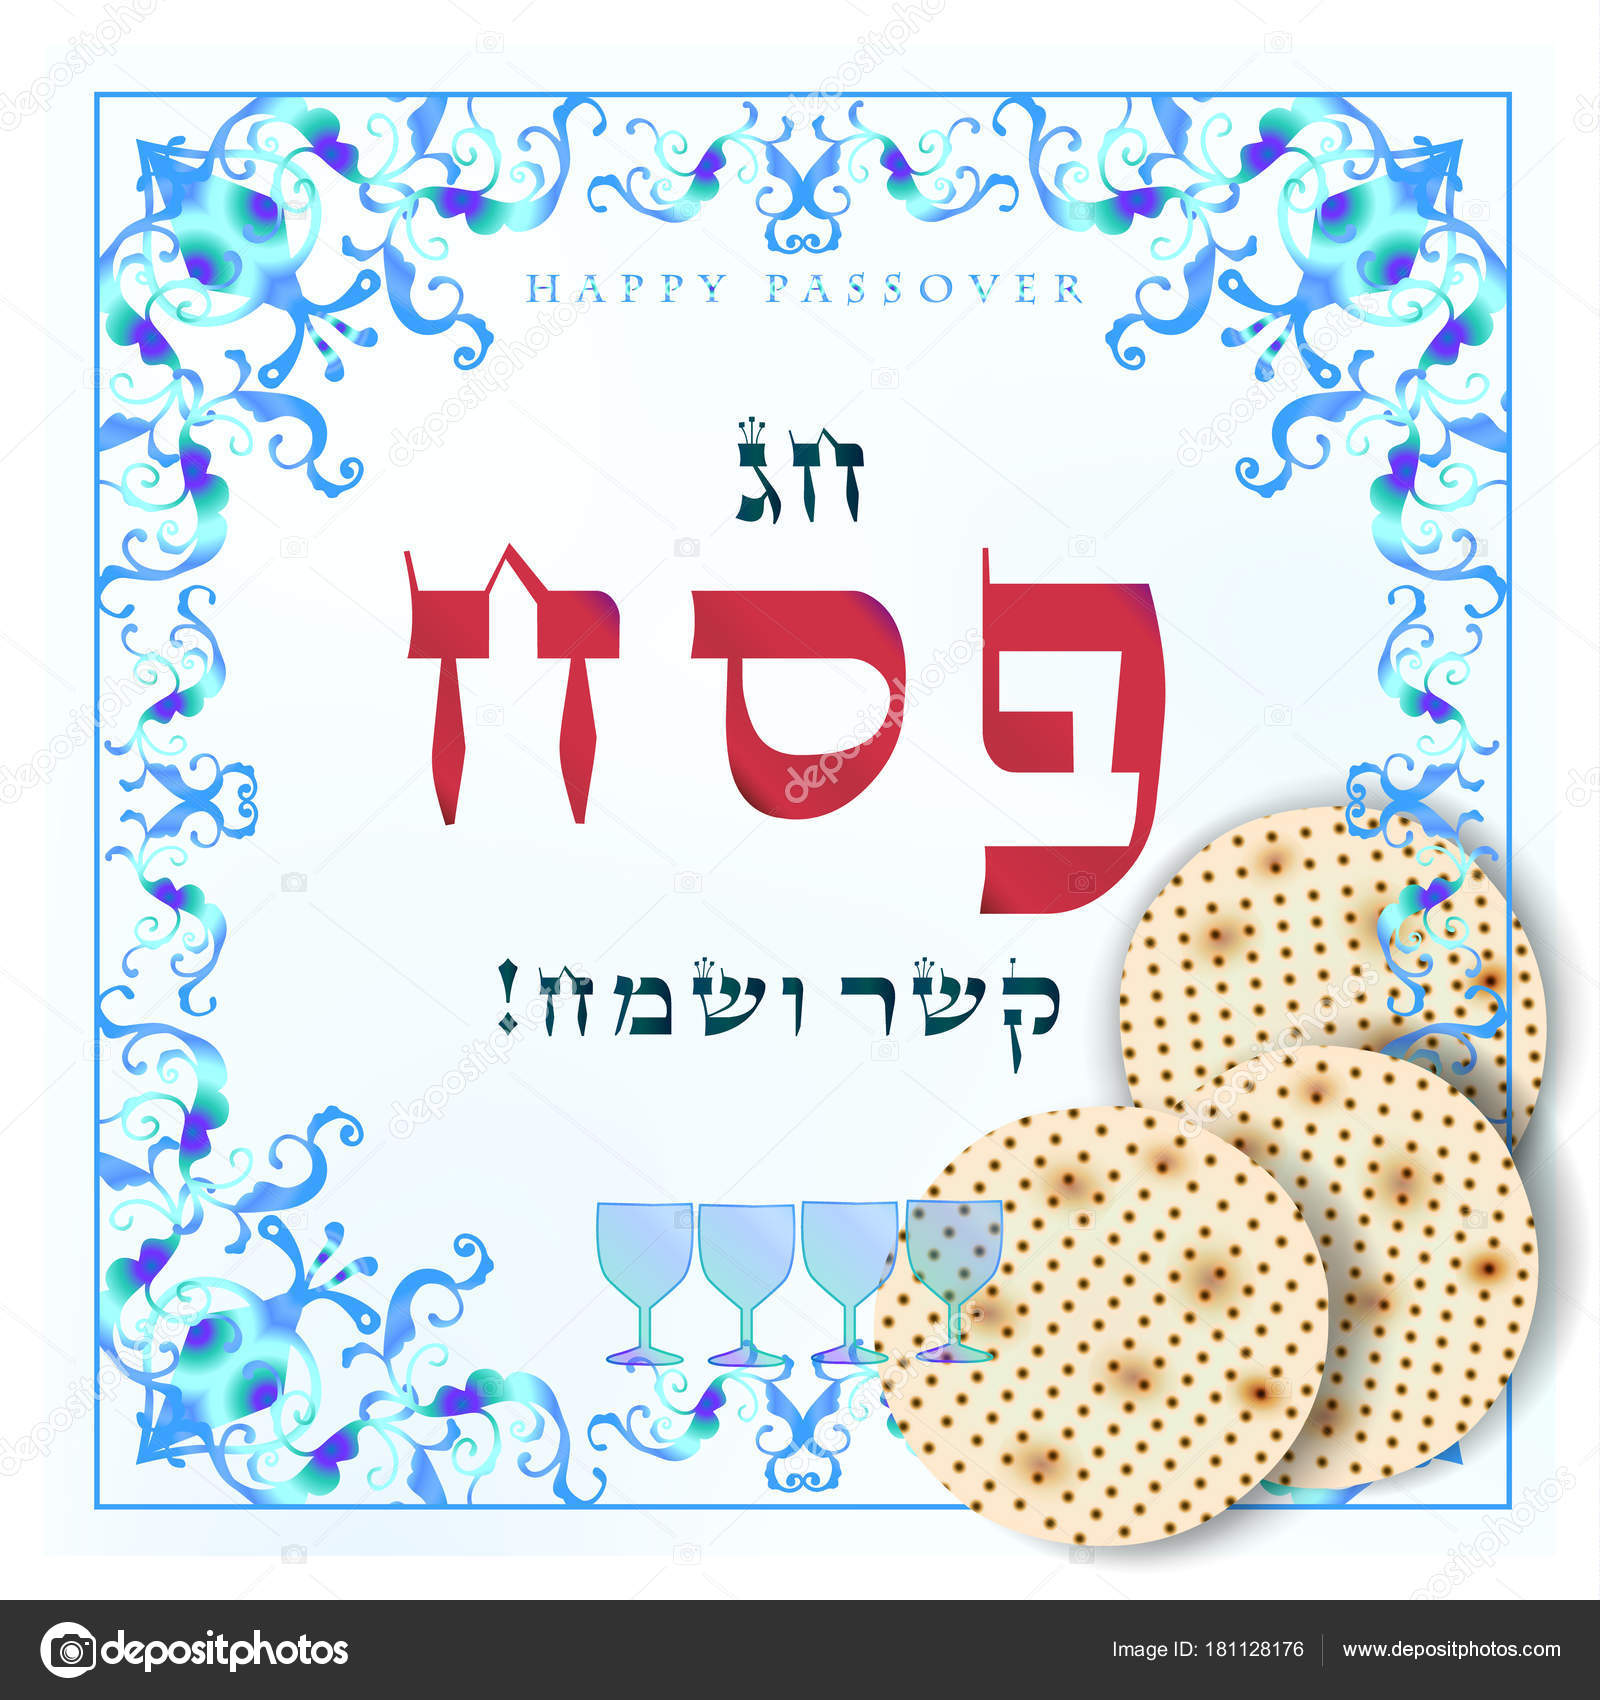 Happy passover holiday translate hebrew lettering greeting card happy passover holiday translate from hebrew lettering greeting card decorative ornamental palm leaves frame four wine glass matza is an jewish m4hsunfo Image collections